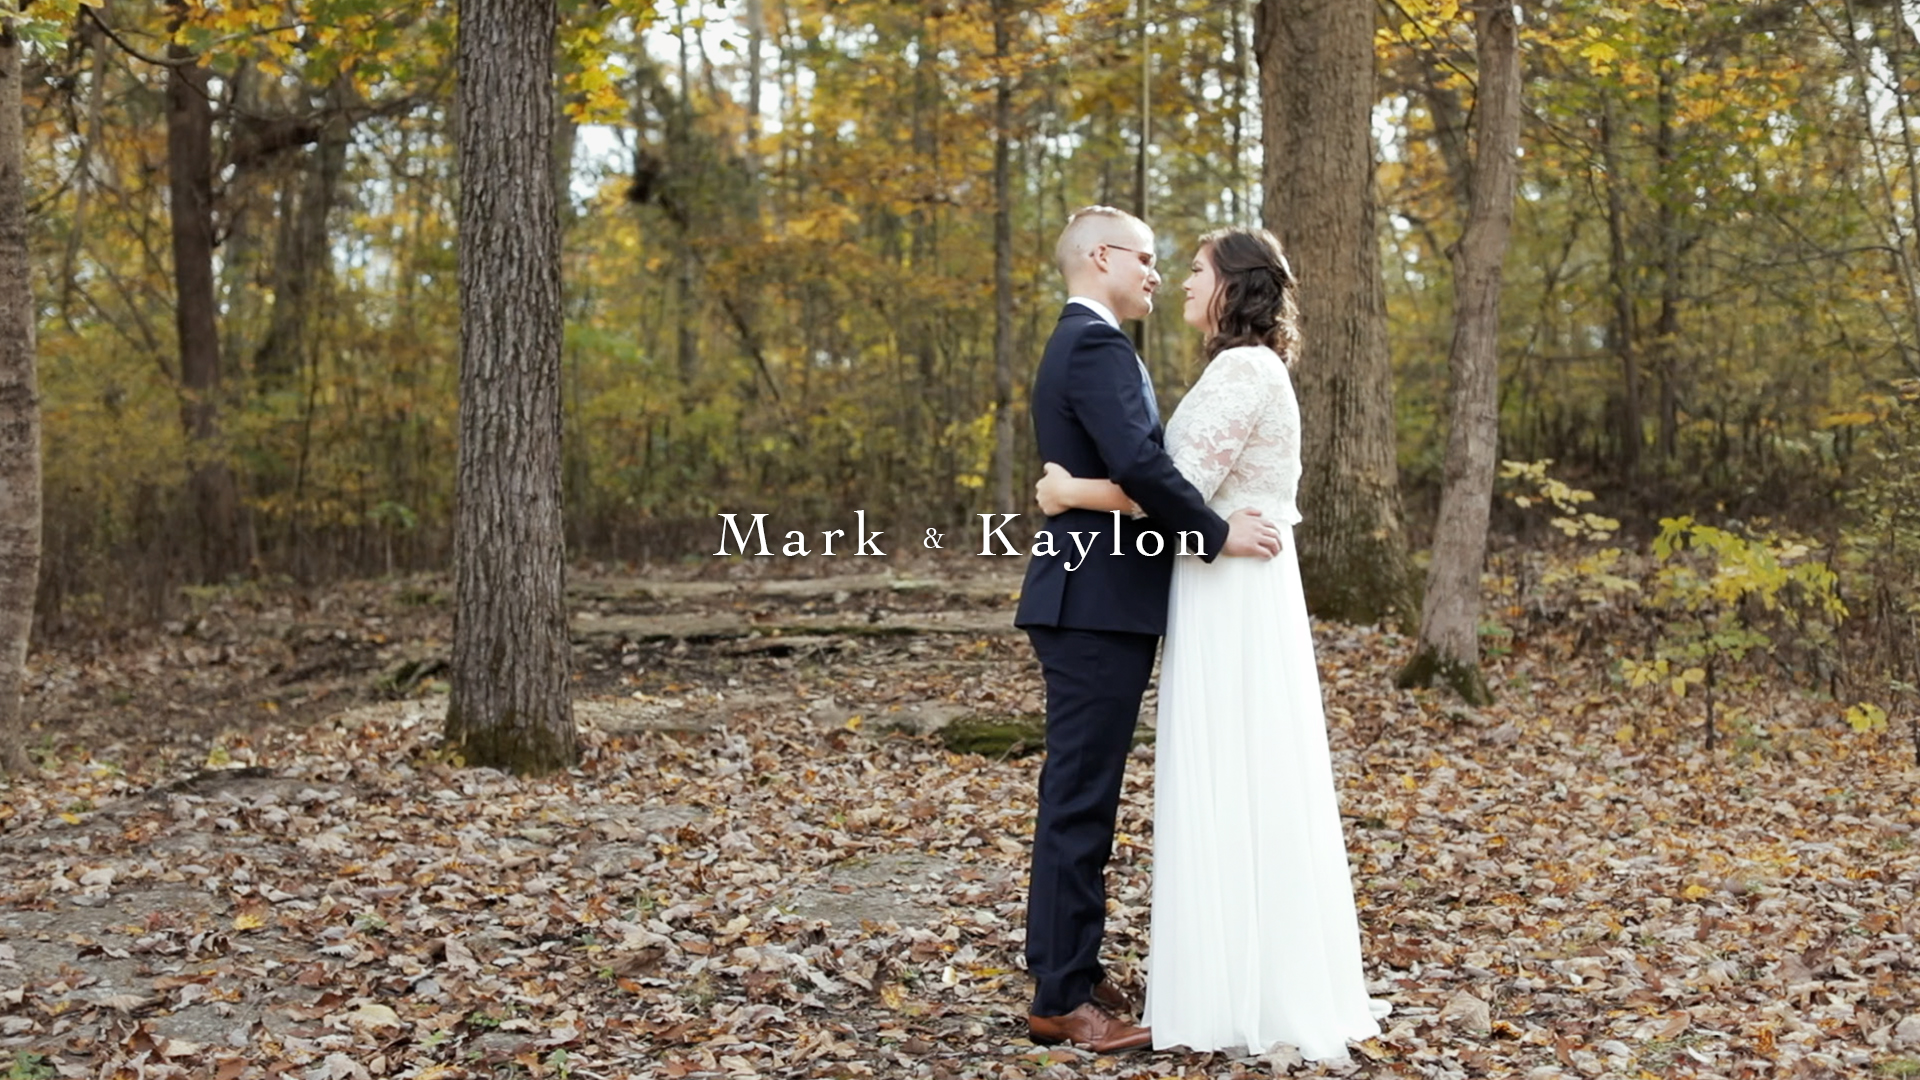 Mark + Kaylon | Murfreesboro, Tennessee | The Wren's Nest